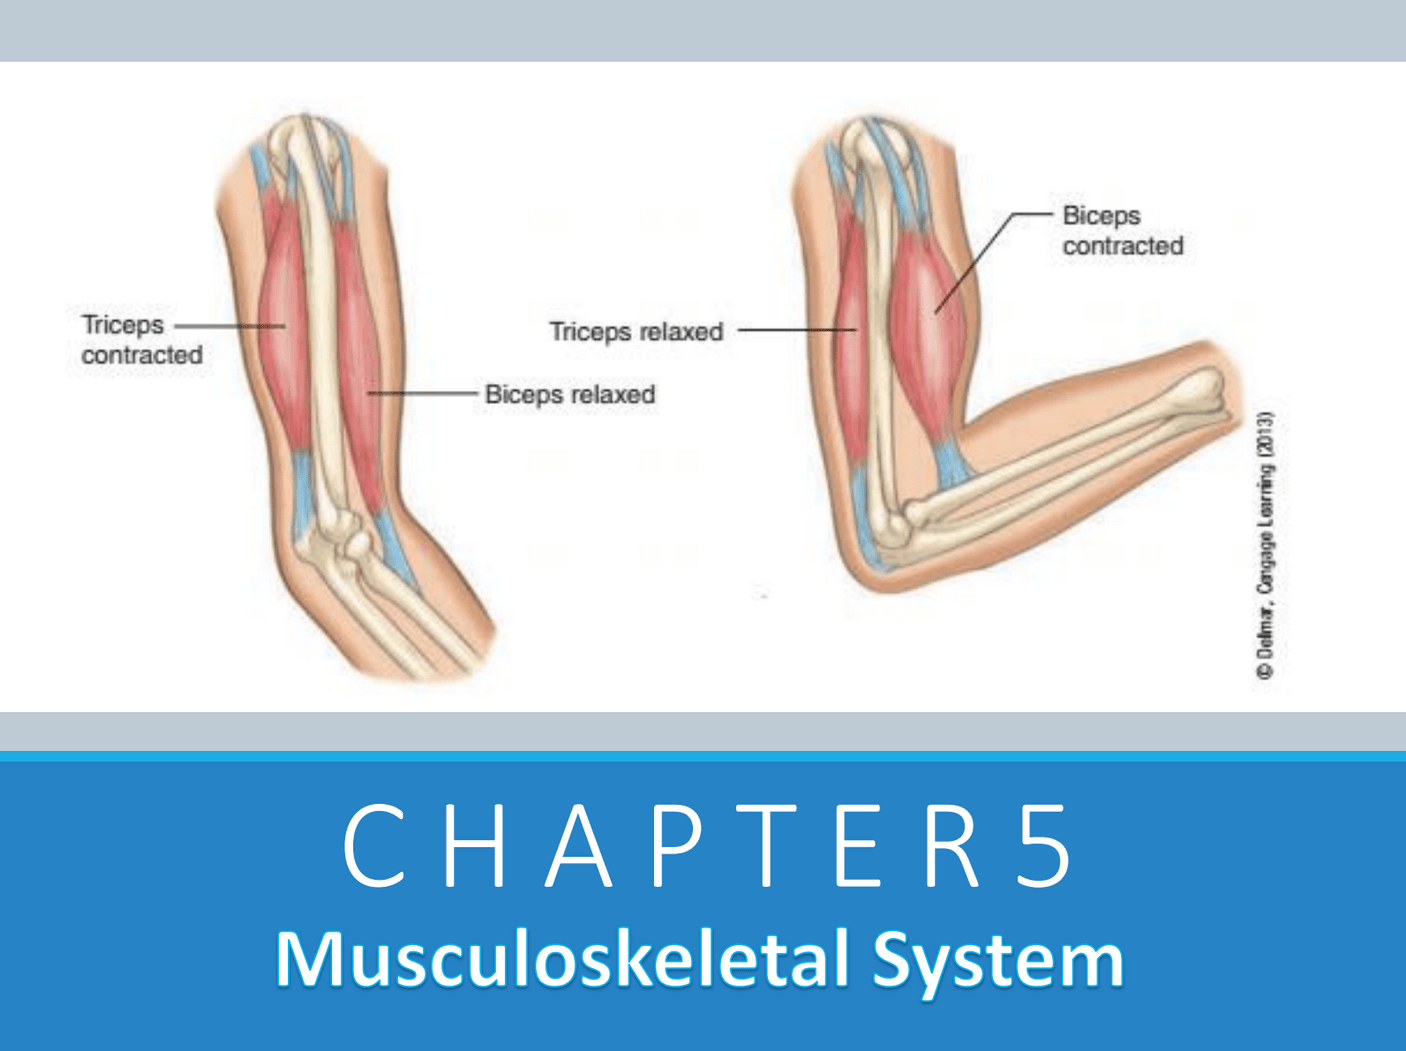 Chapter 5: Musculoskeletal System